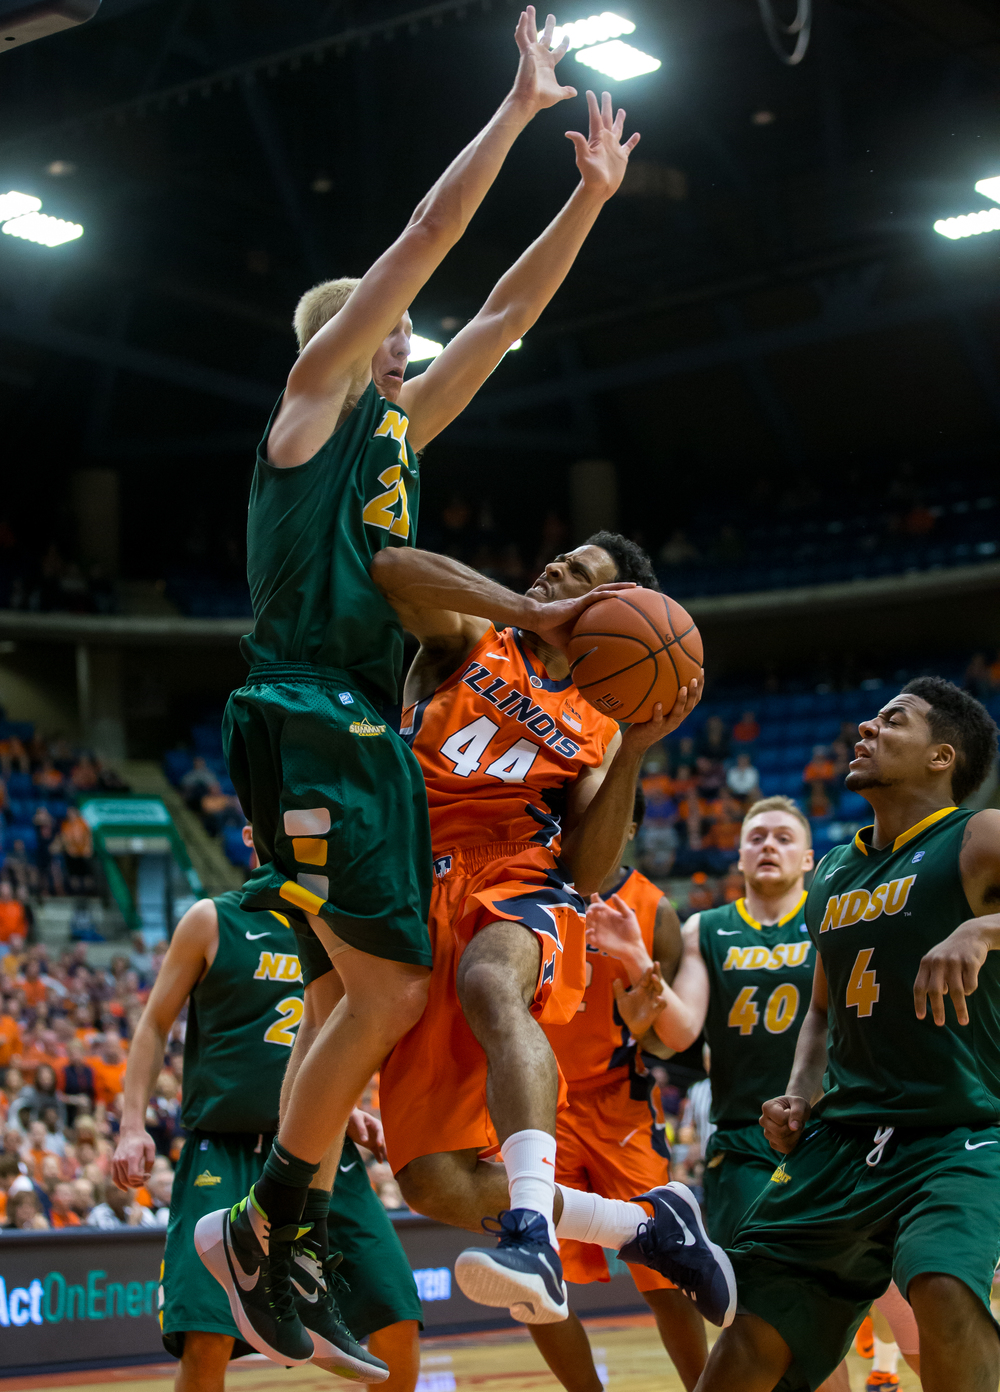 University of Illinois' Alex Austin (44) draws the foul from North Dakota State University's A.J. Jacobson (21) as he drives towards the basket during the second half at the Prairie Capital Convention Center, Sunday, Nov. 15, 2015, in Springfield, Ill. Justin L. Fowler/The State Journal-Register